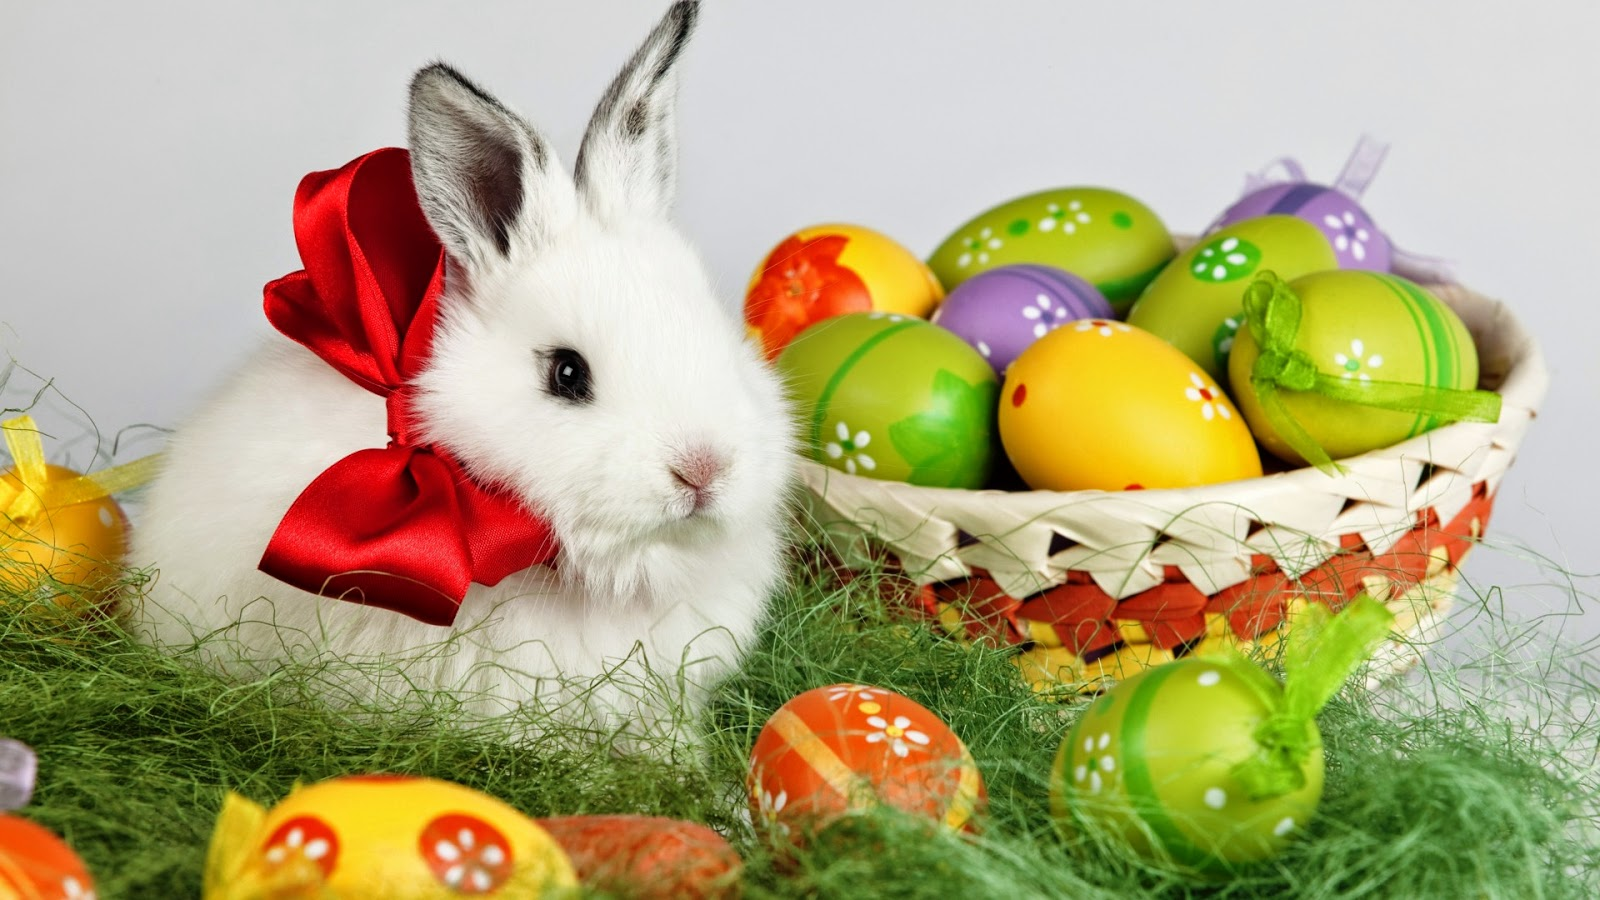 Happy Easter 2015 - Easter Wishes 2015: Easter Wallpapers 2015